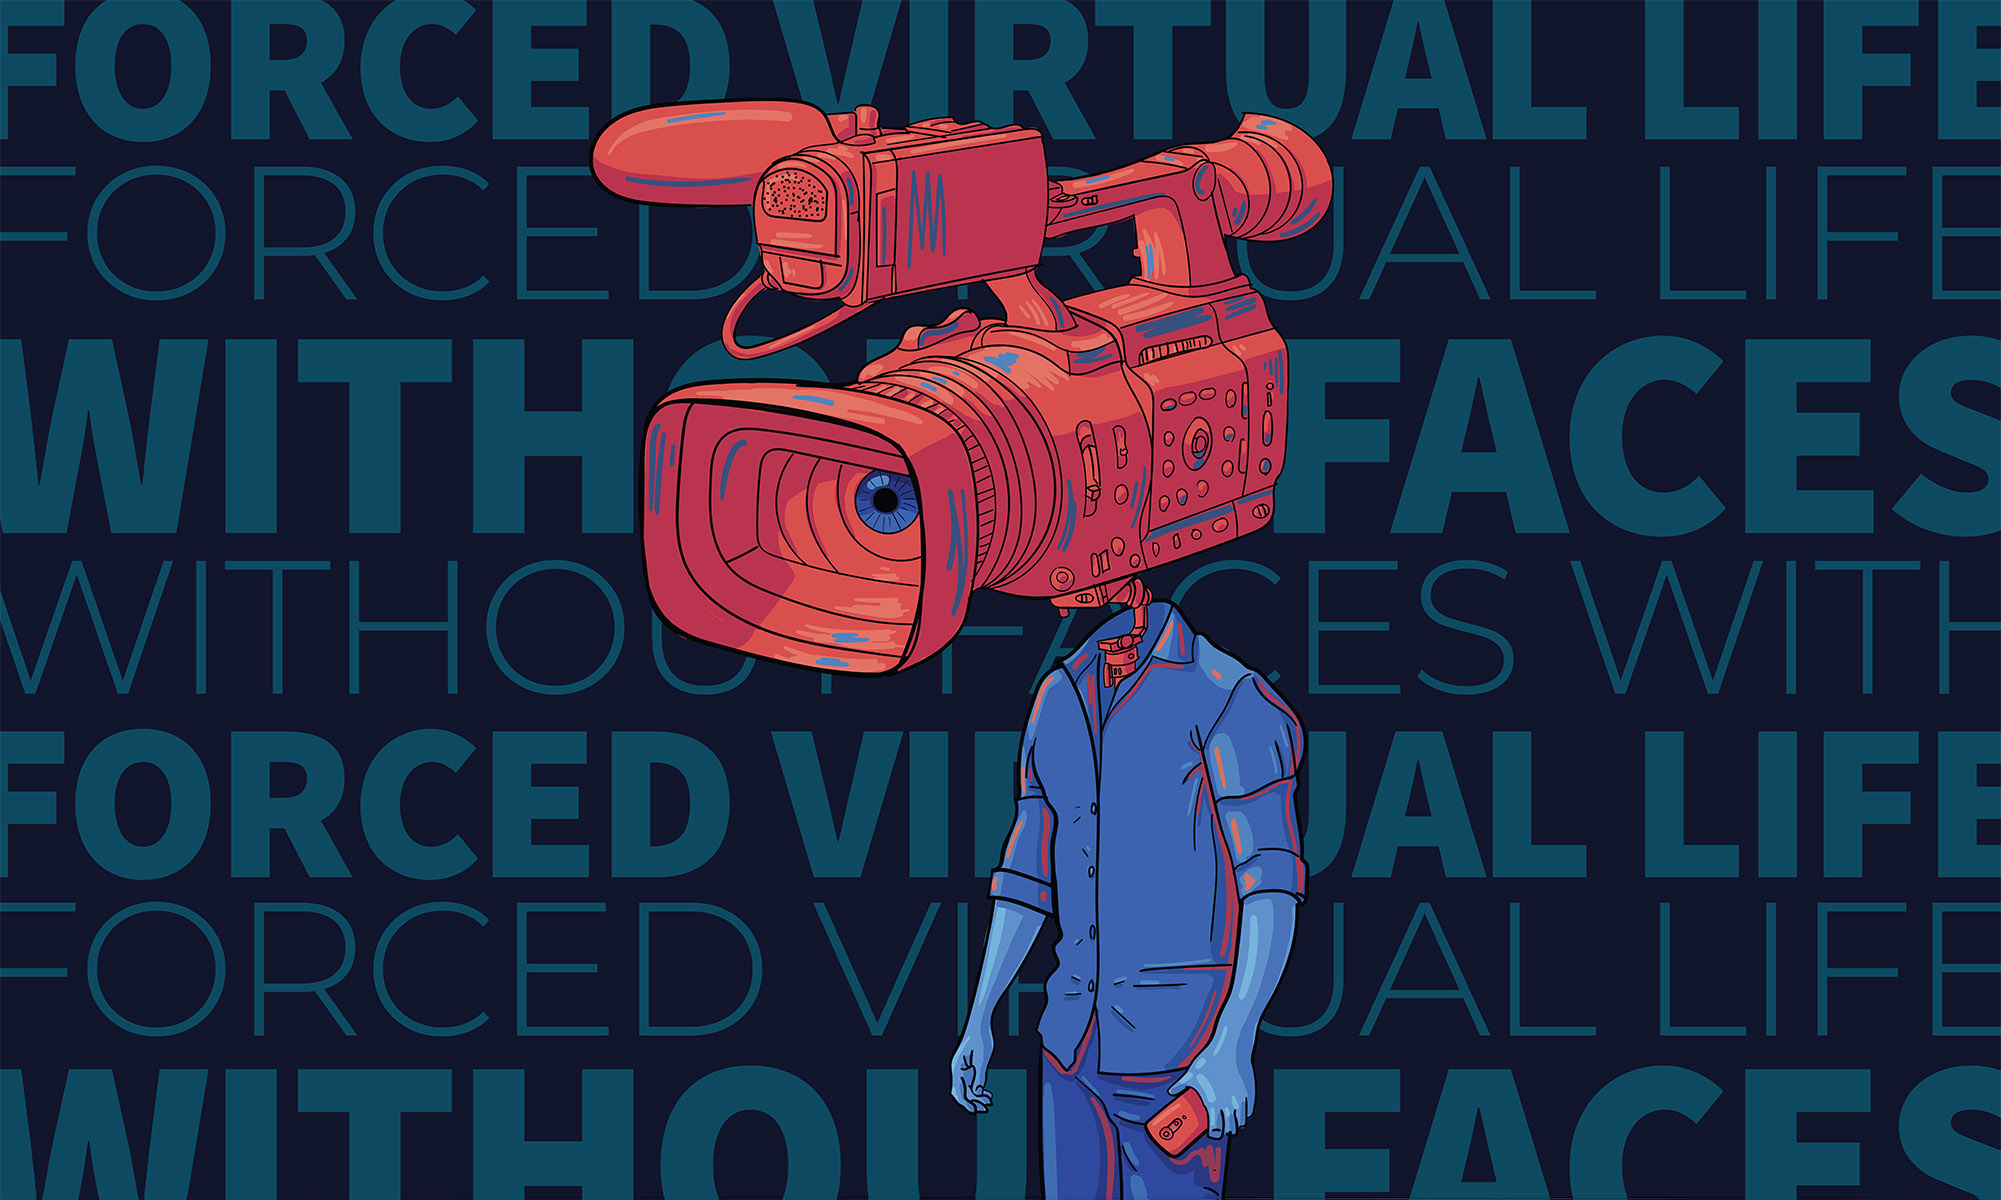 Forced virtual life